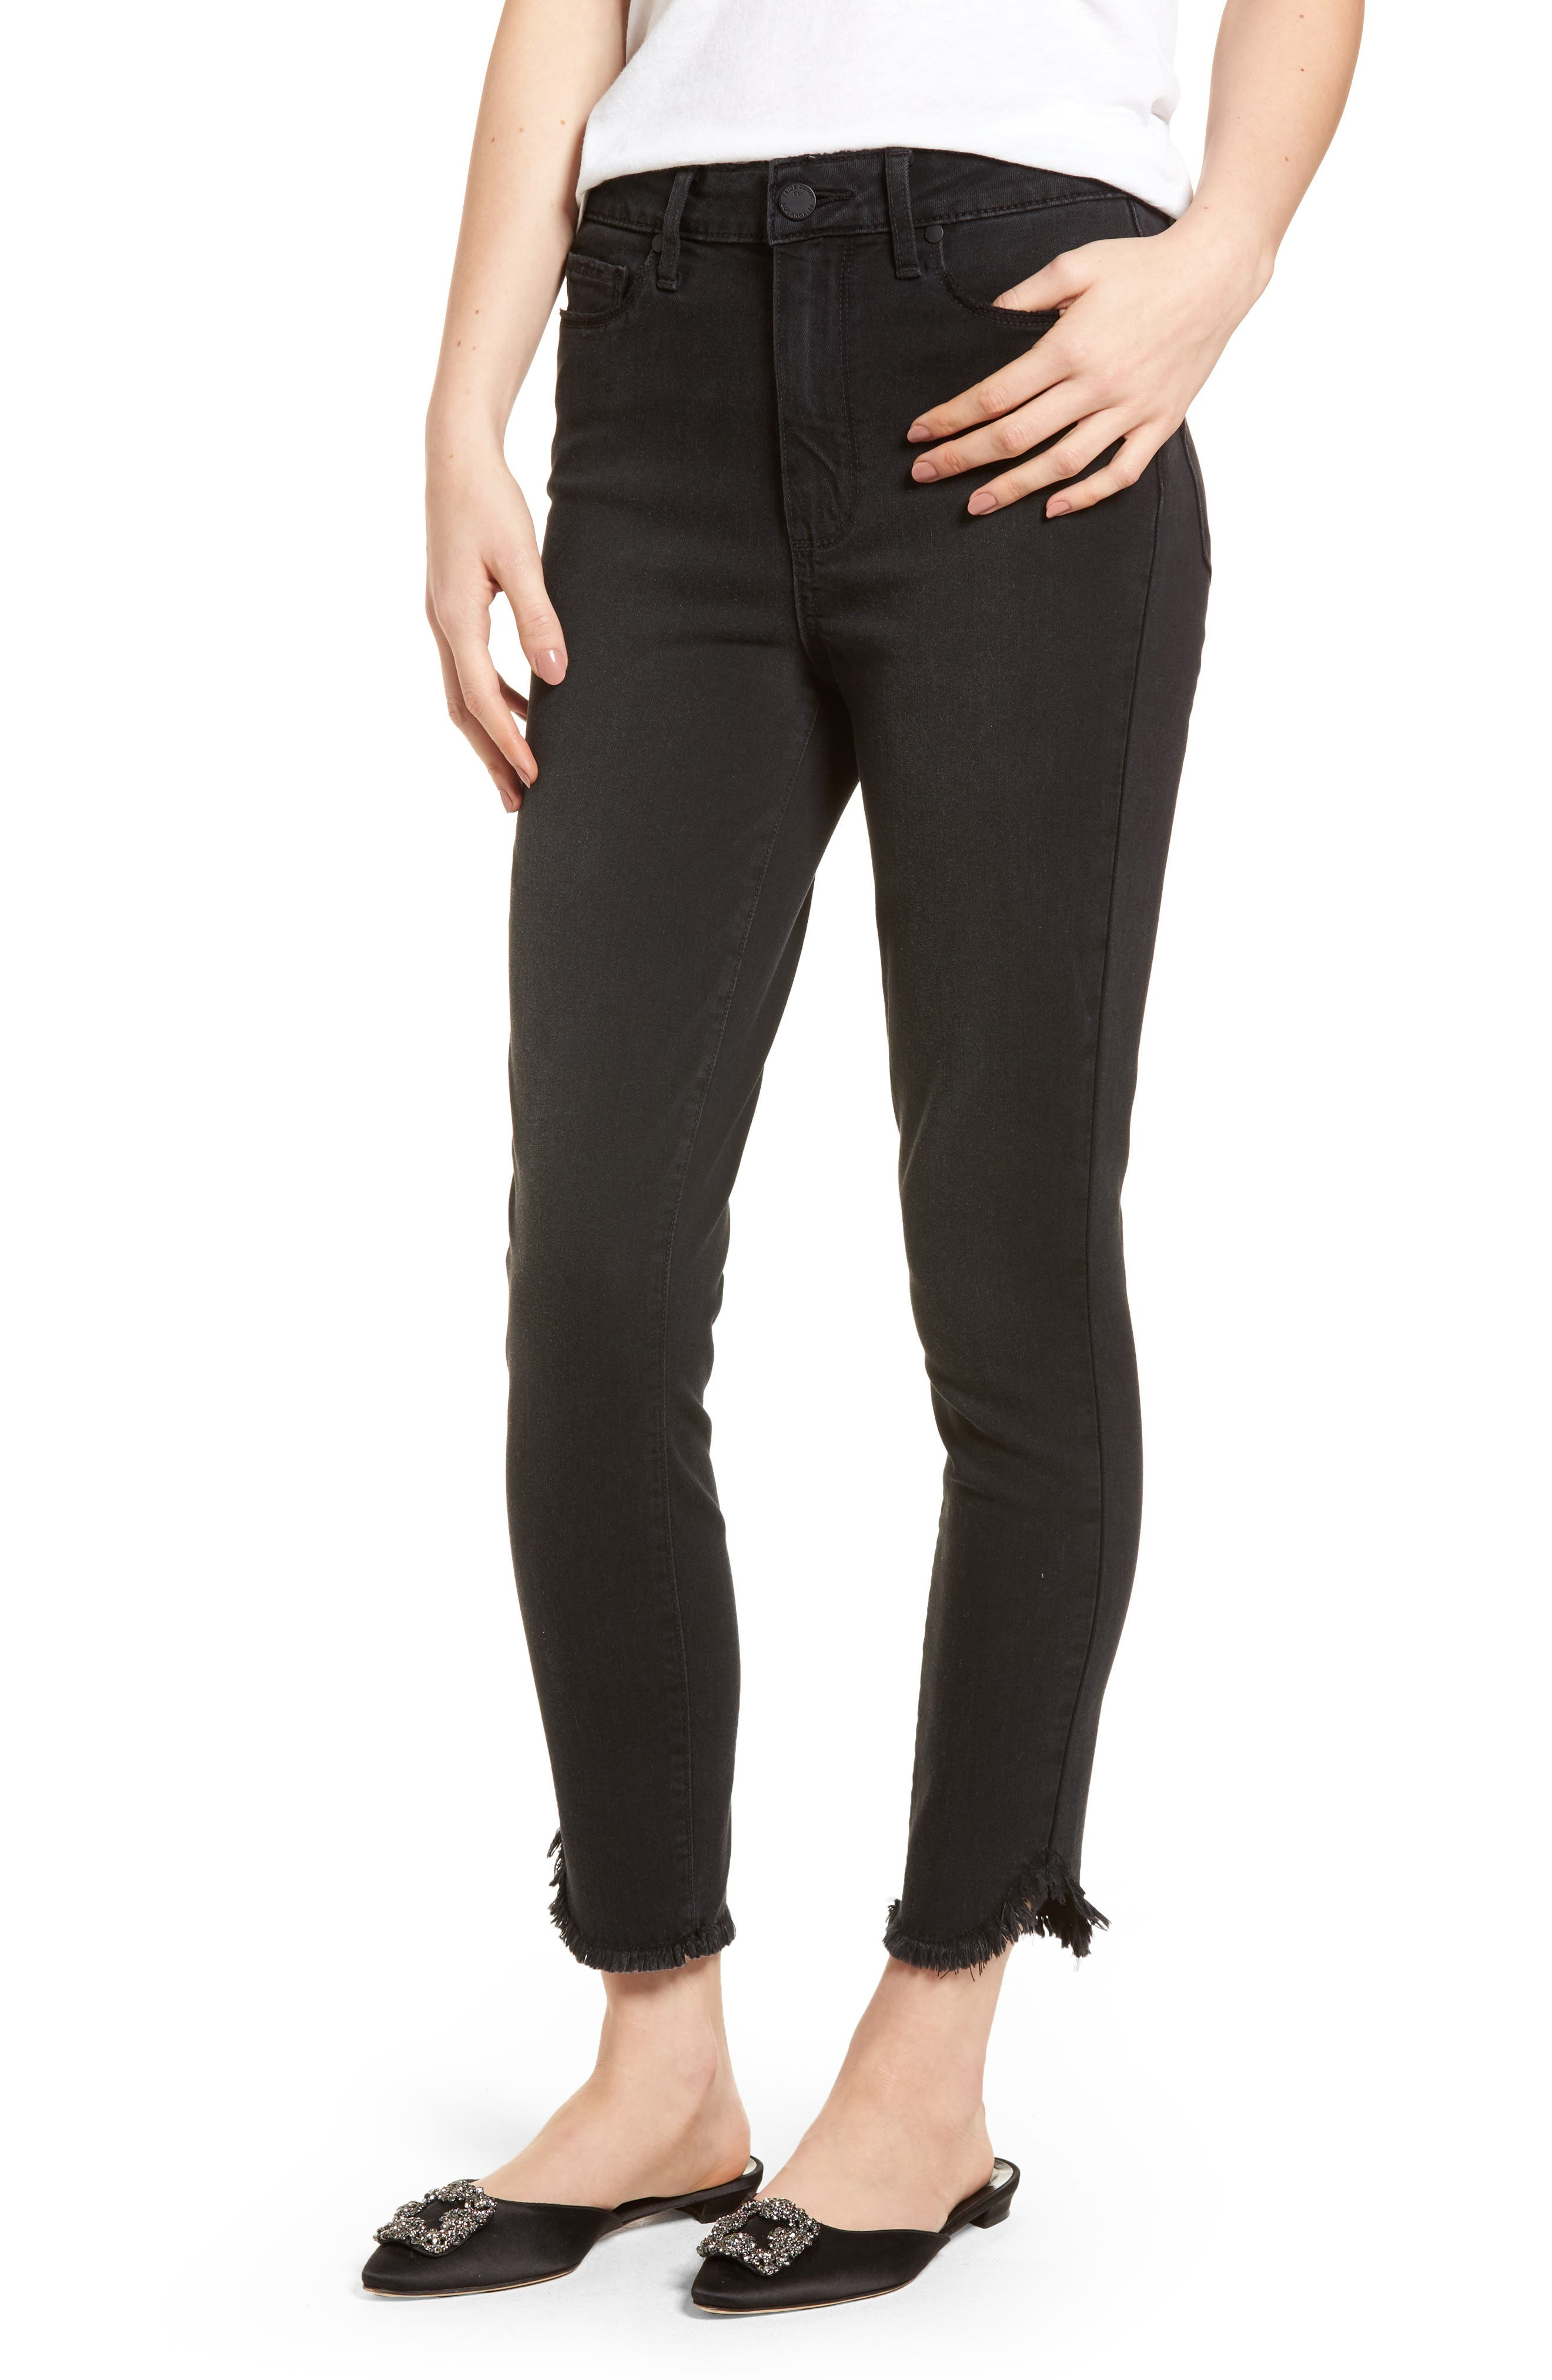 Transcend - Margot High Waist Crop Ultra Skinny Jeans,                             Main thumbnail 1, color,                             Draco